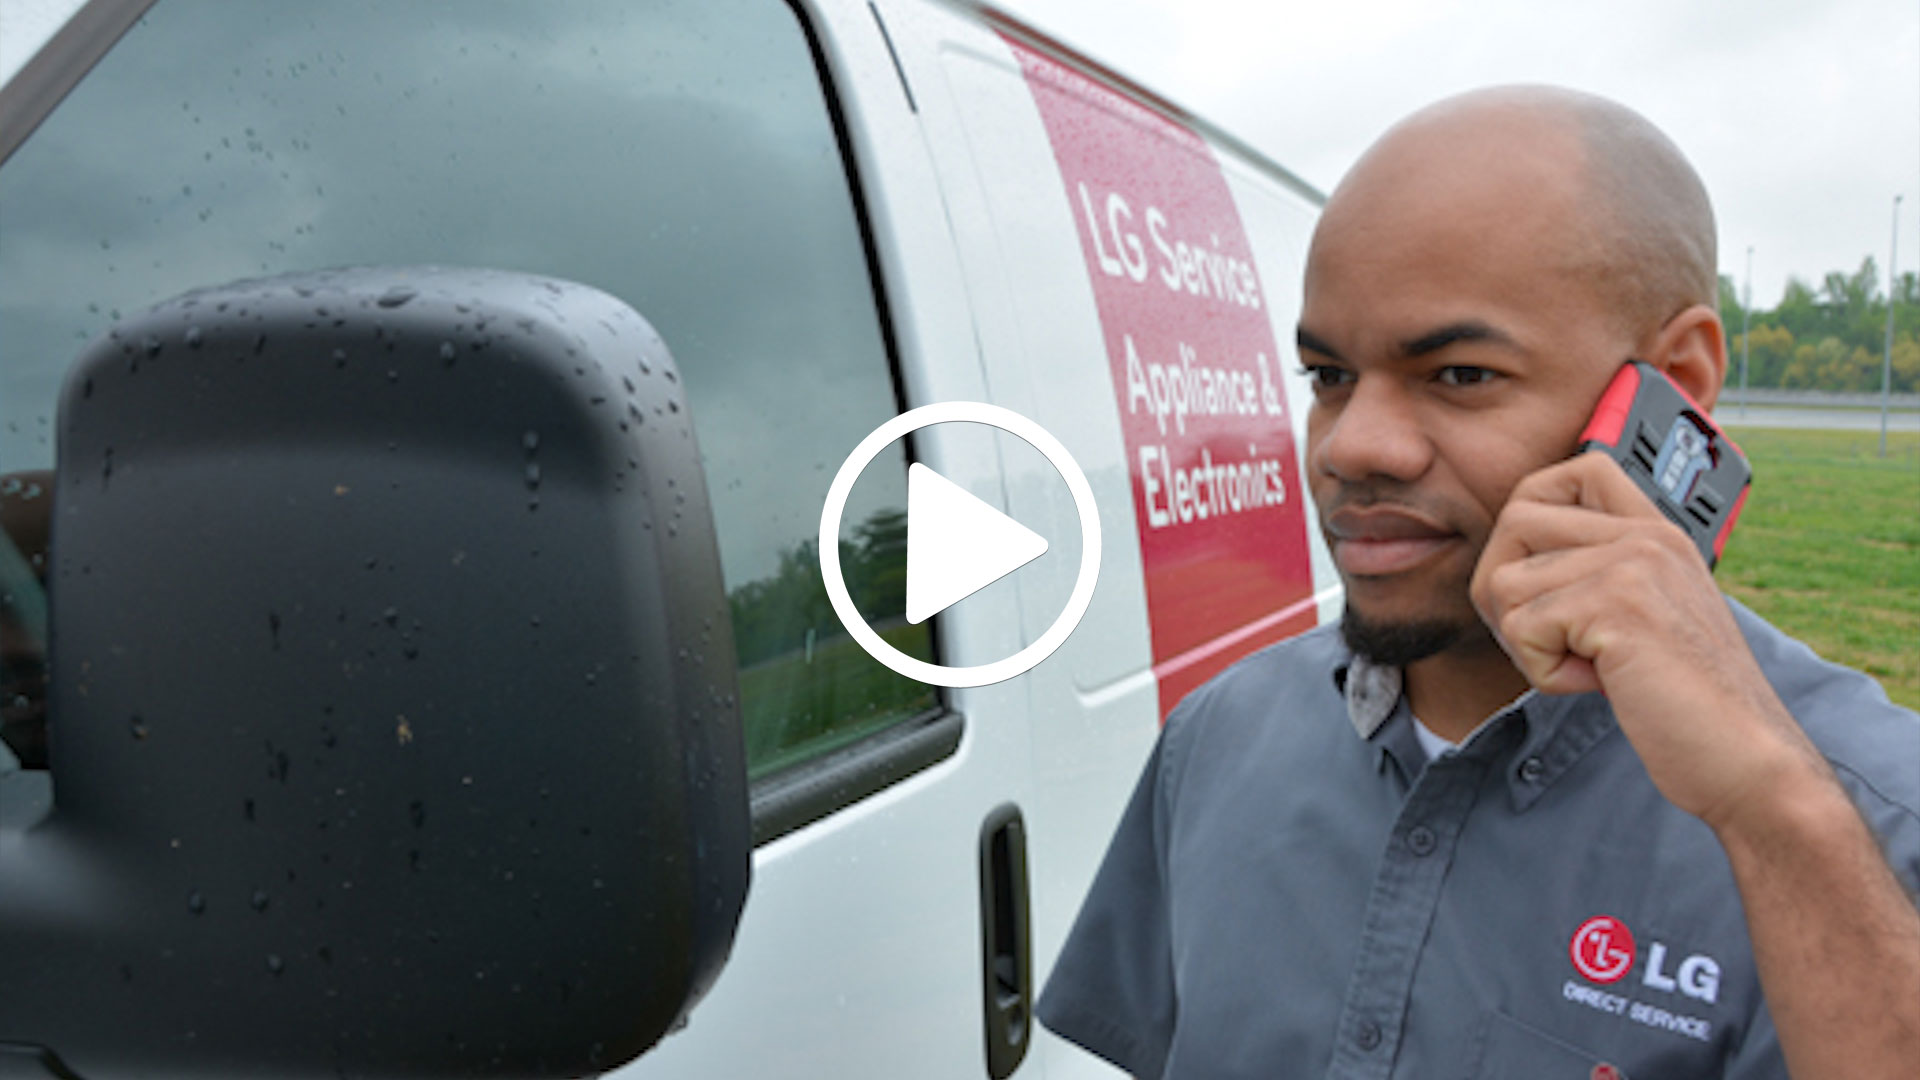 Watch our careers video for available job opening Field Service Technician in Cambridge, MA